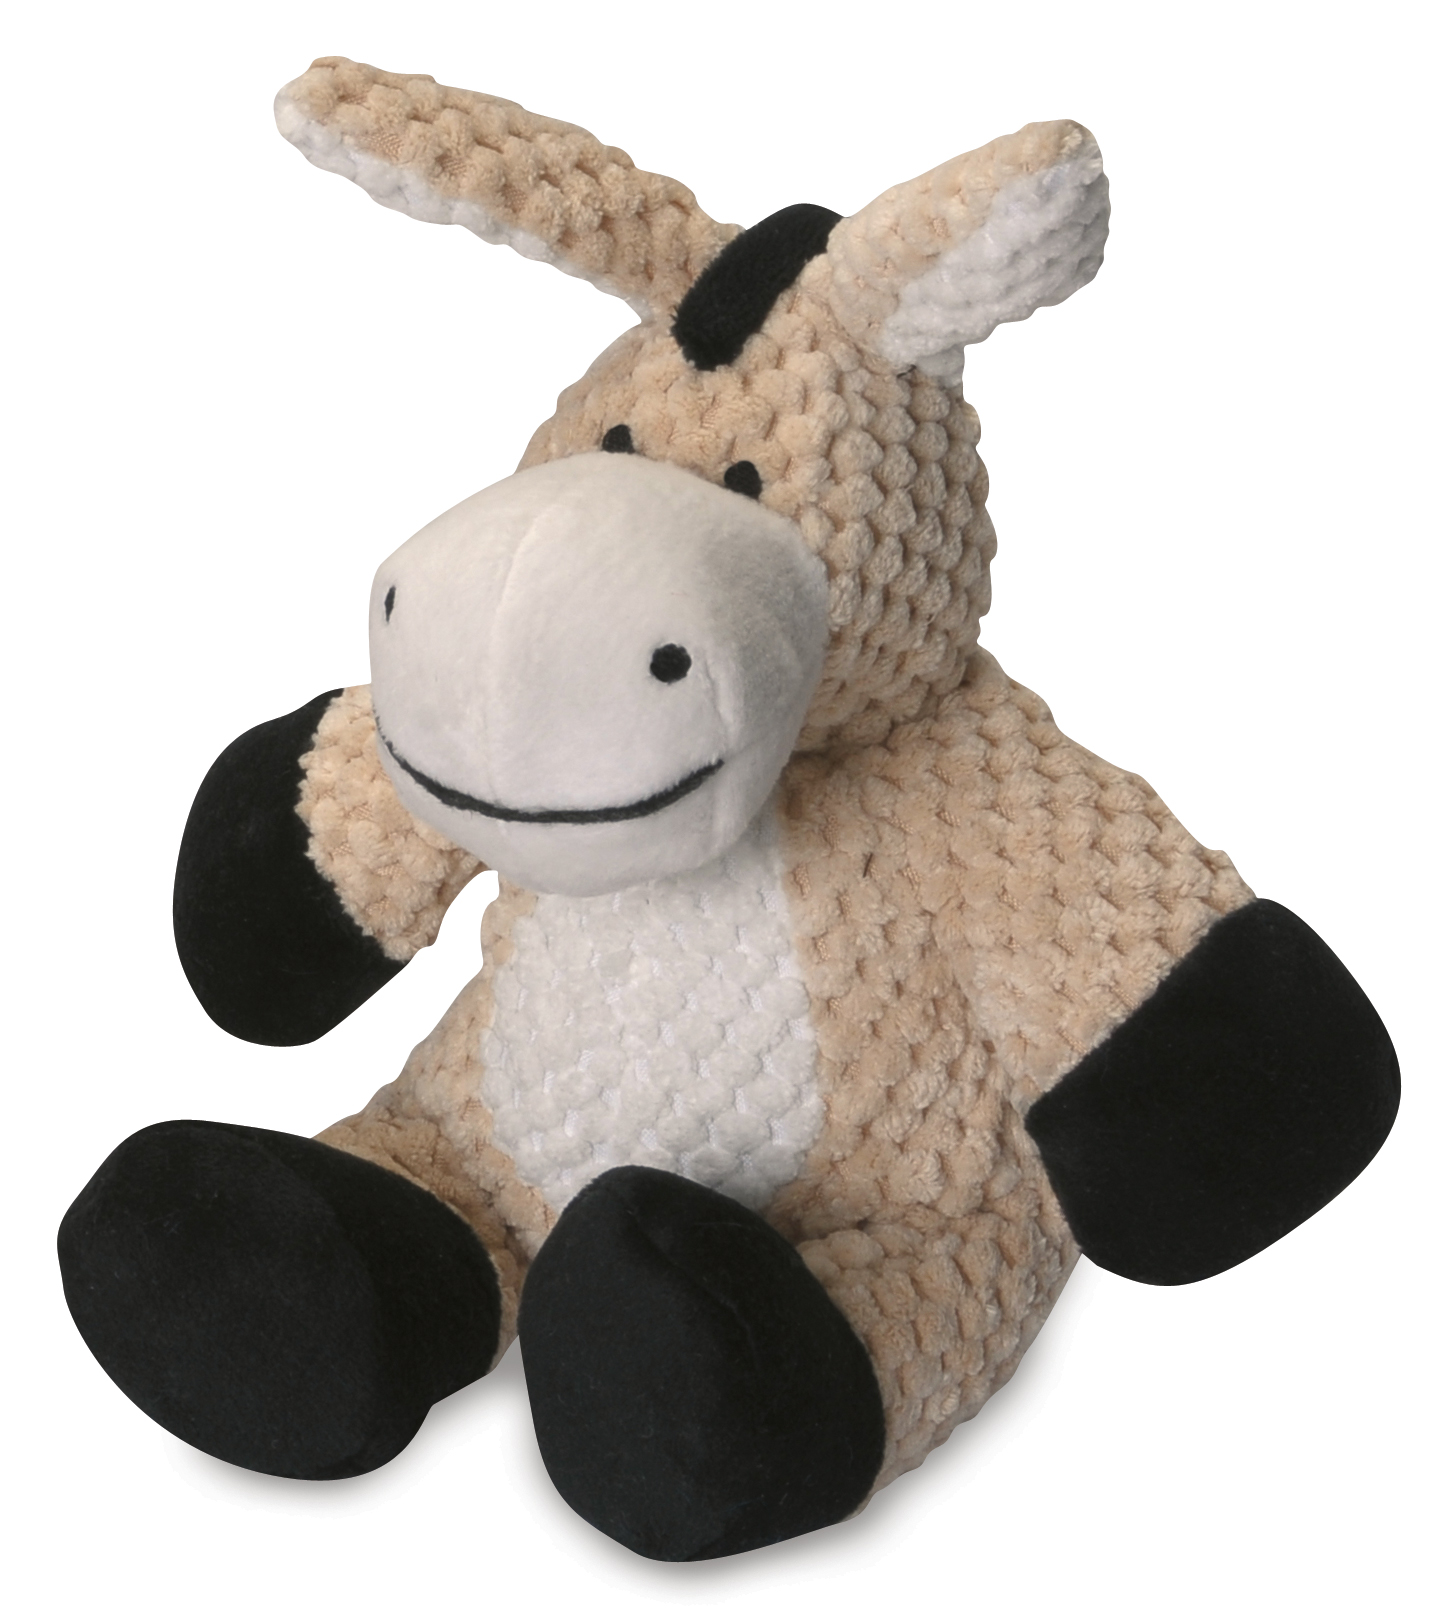 Checkers Plush Donkey